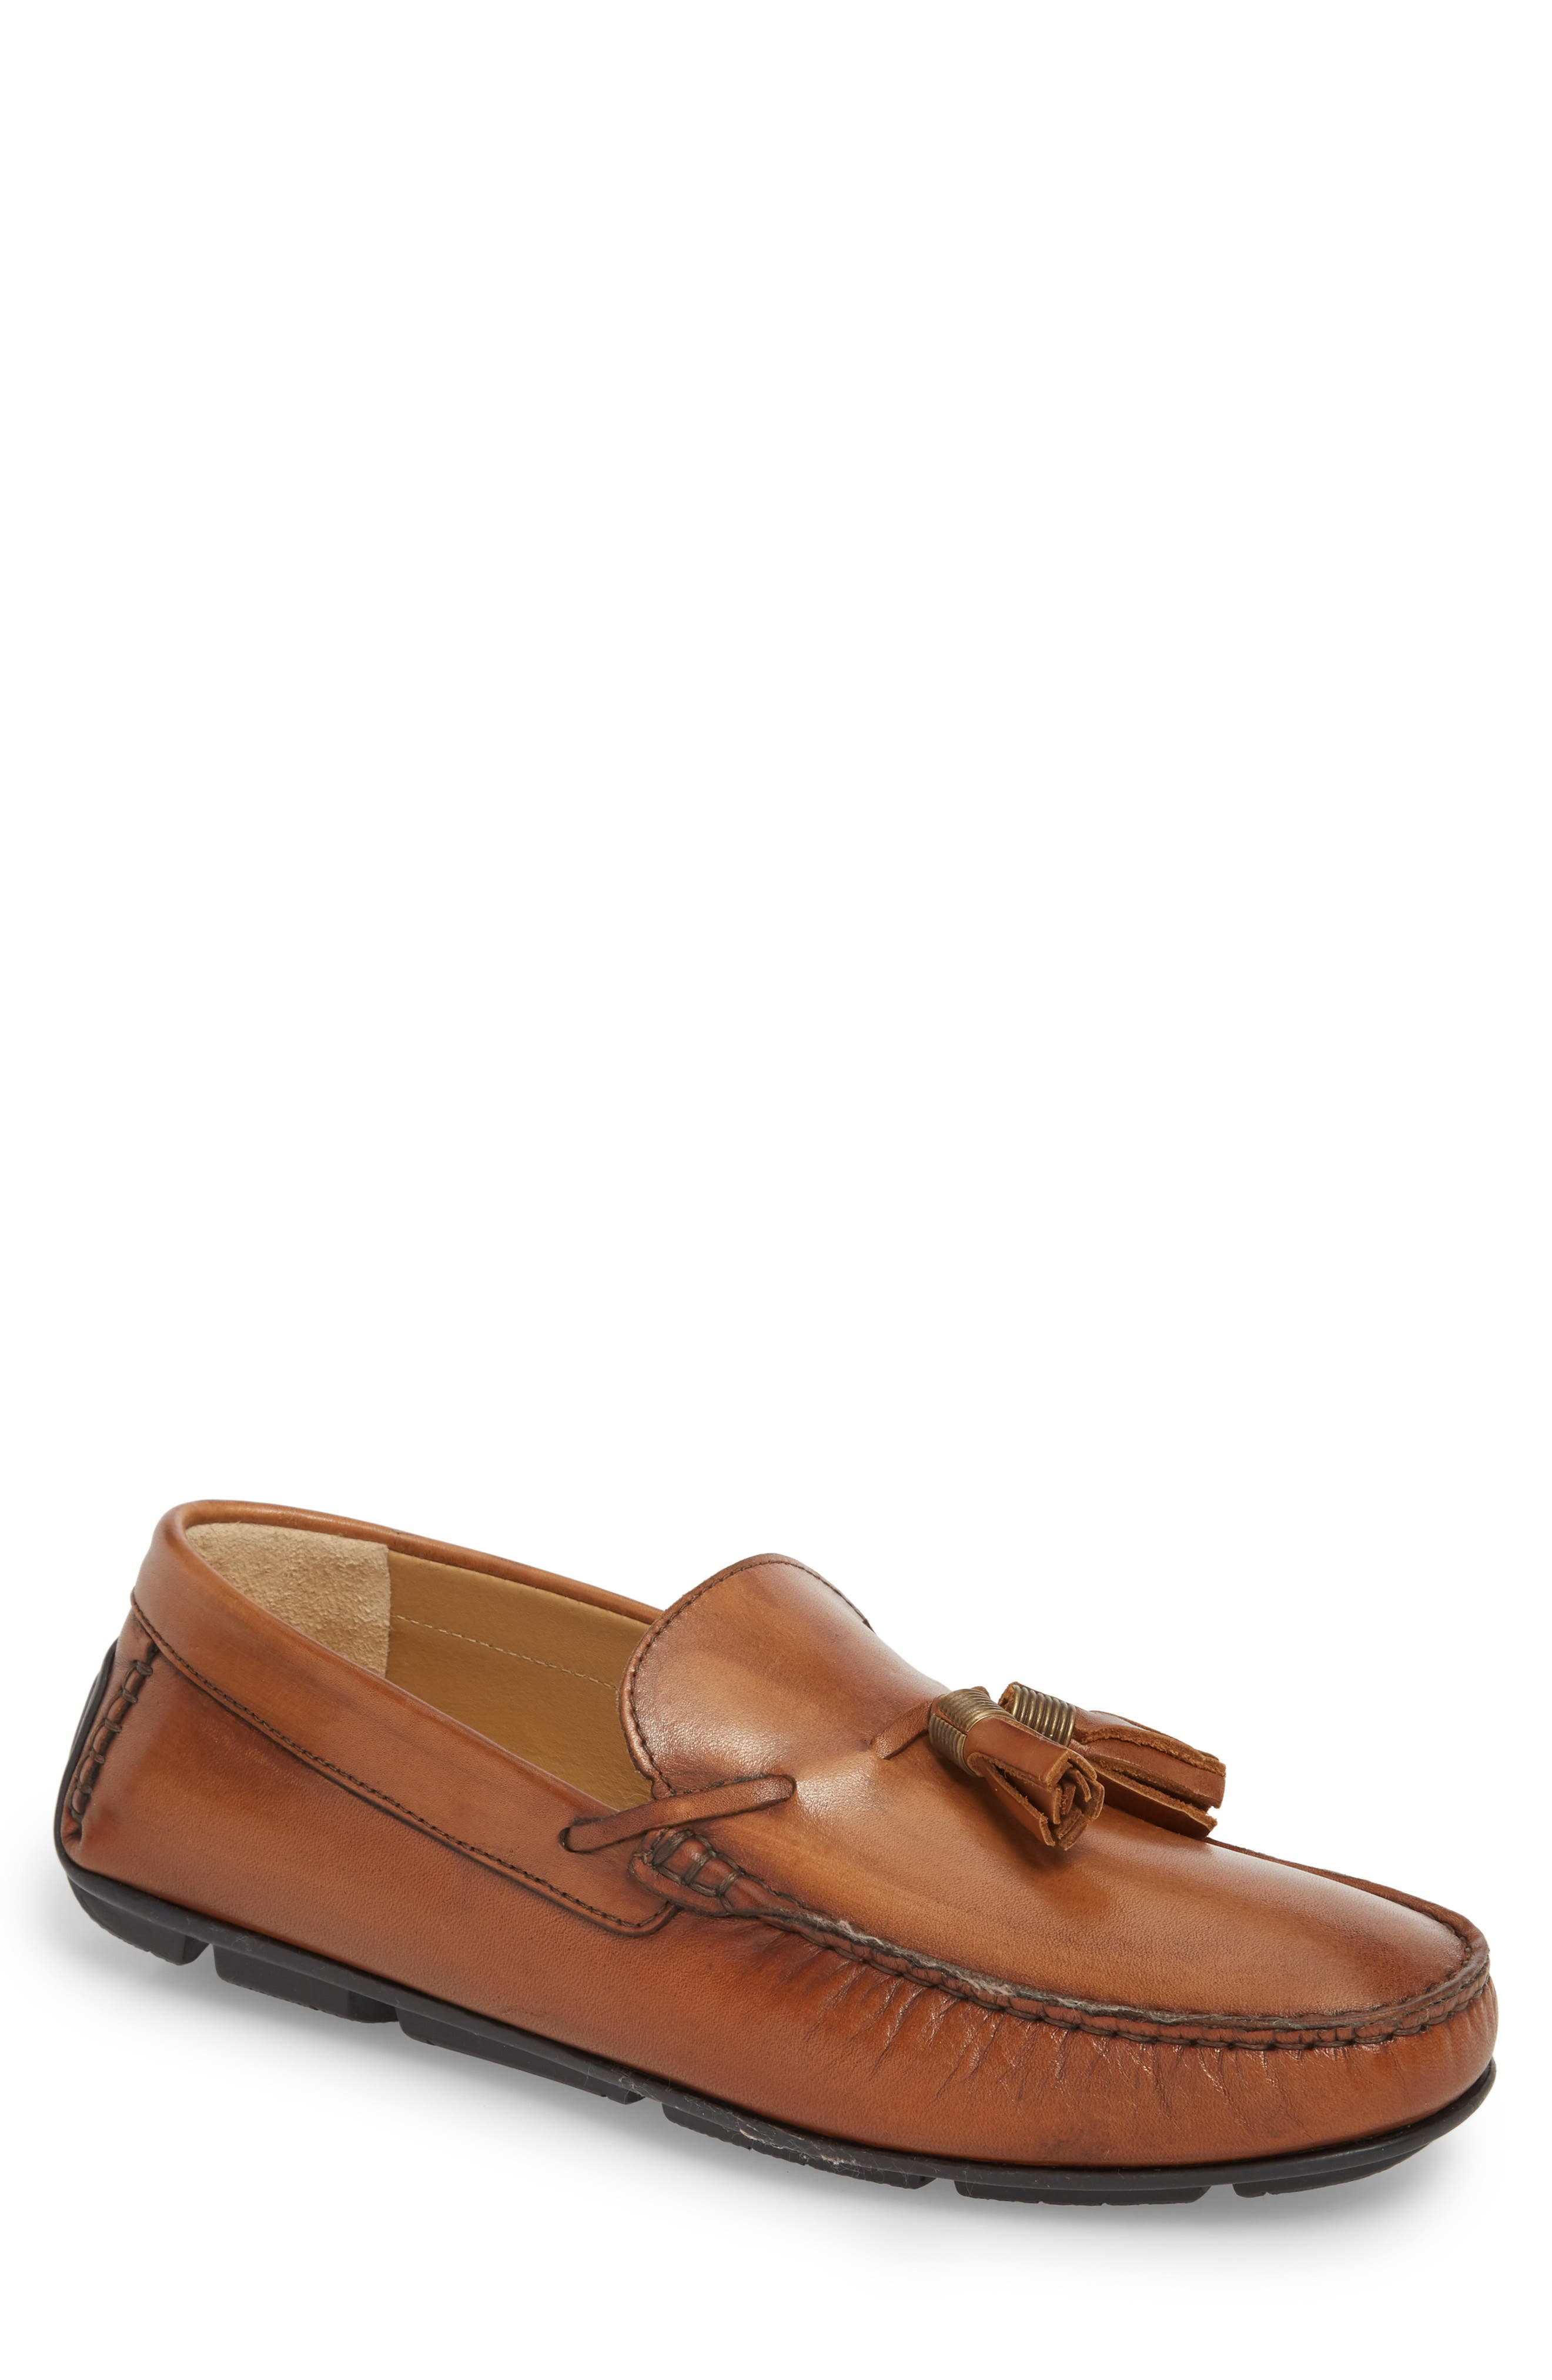 Randall Tassel Driving Moccasin,                         Main,                         color, Cognac Leather